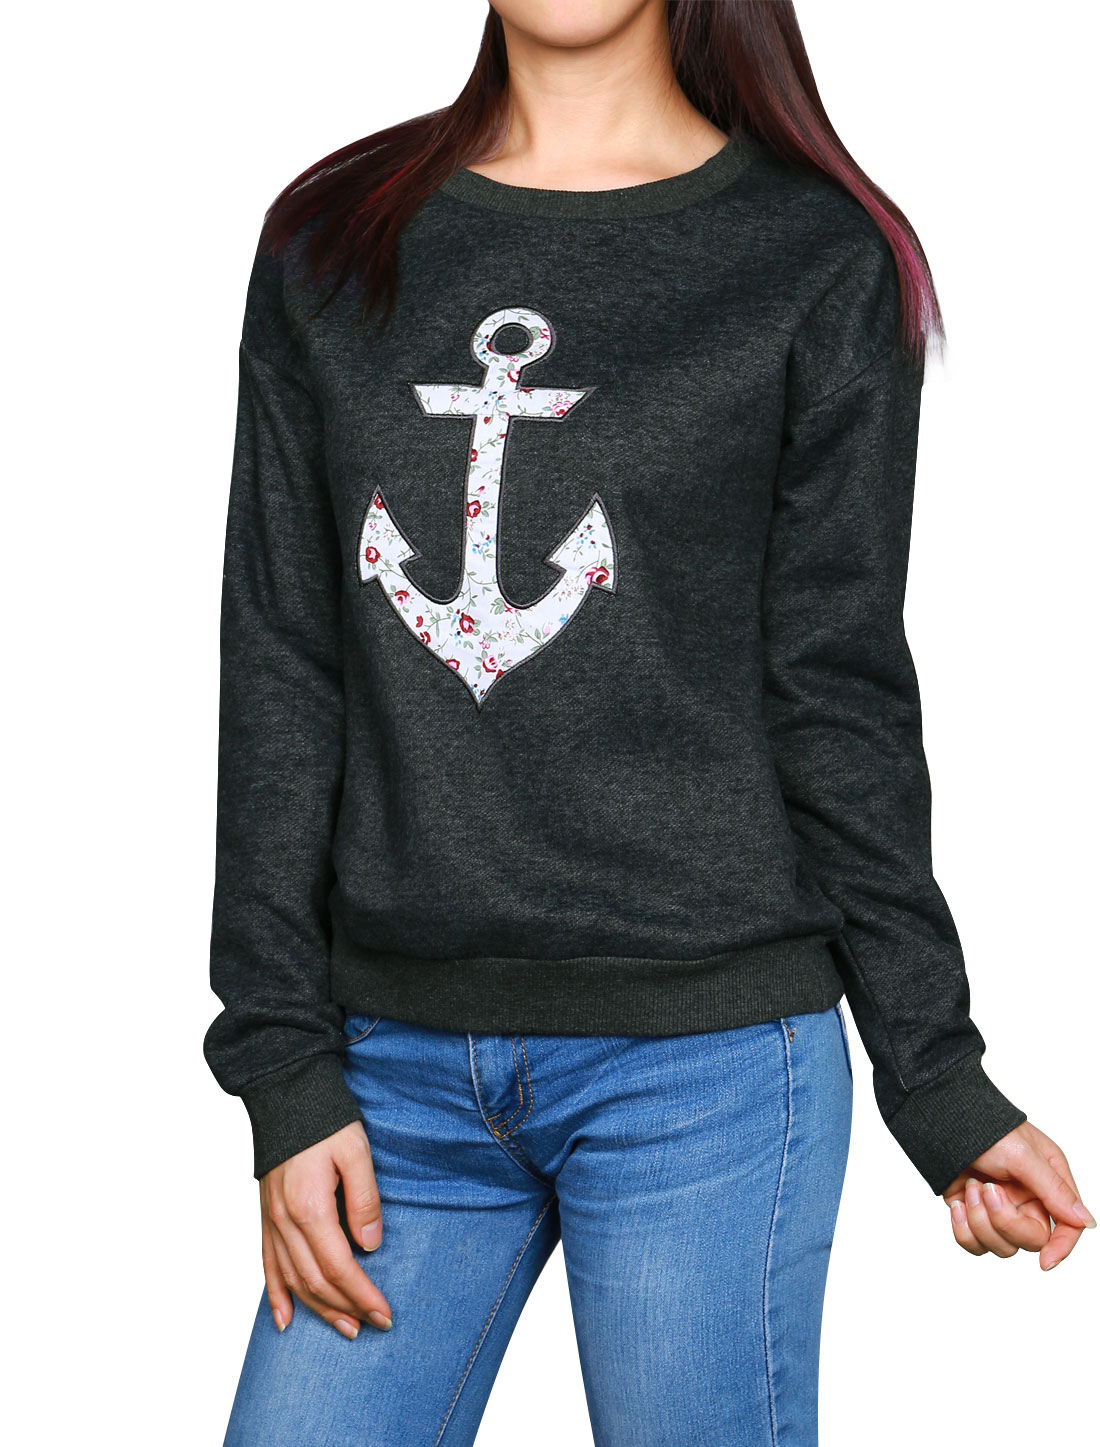 Ladies Floral Anchor Stitched Crew Neck Soft Lined Sweatshirt Gray L